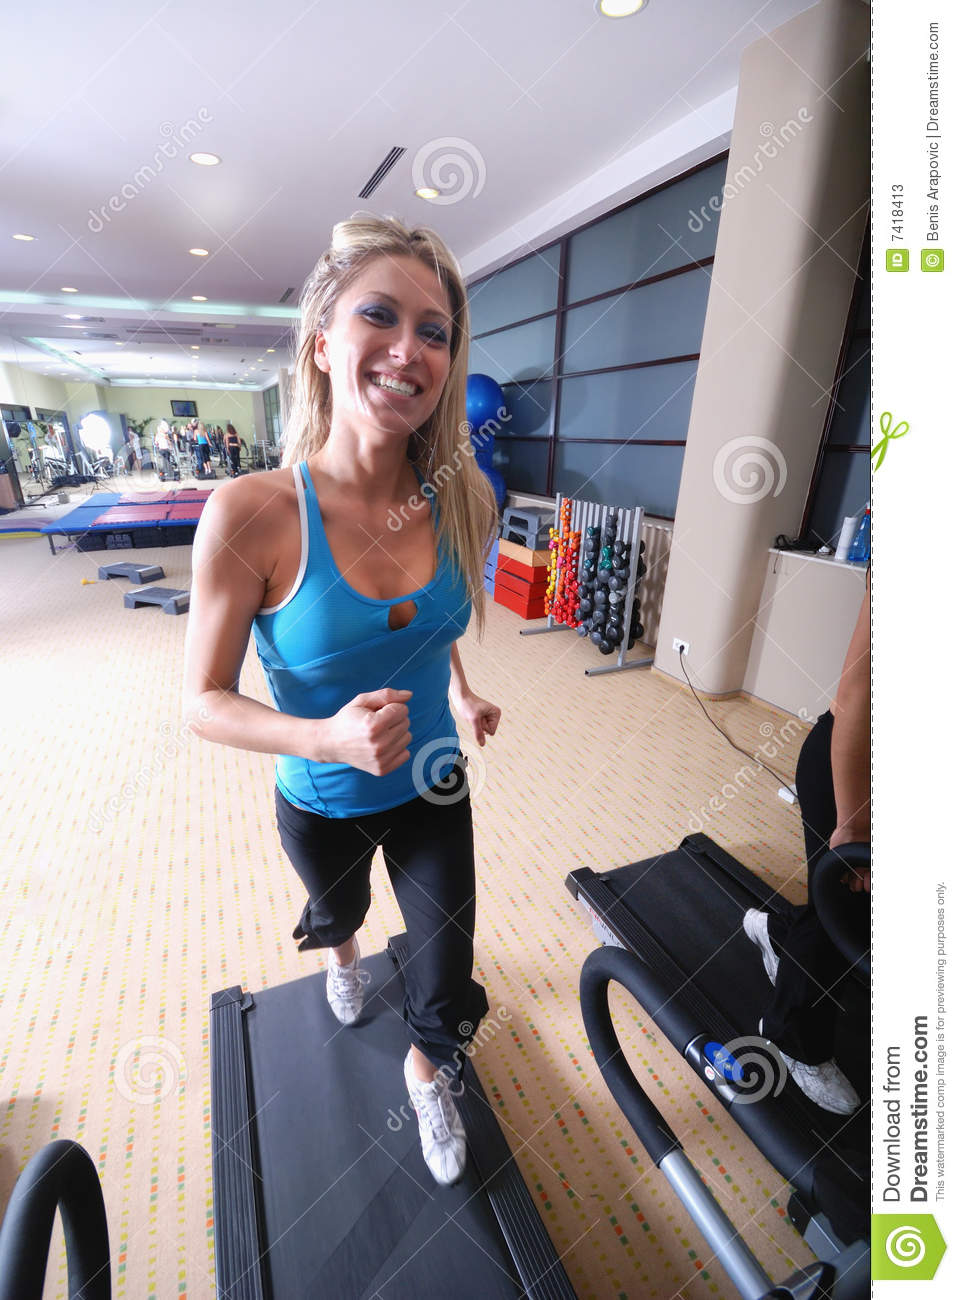 Woman Running On Treadmill Stock Image. Image Of Free ...